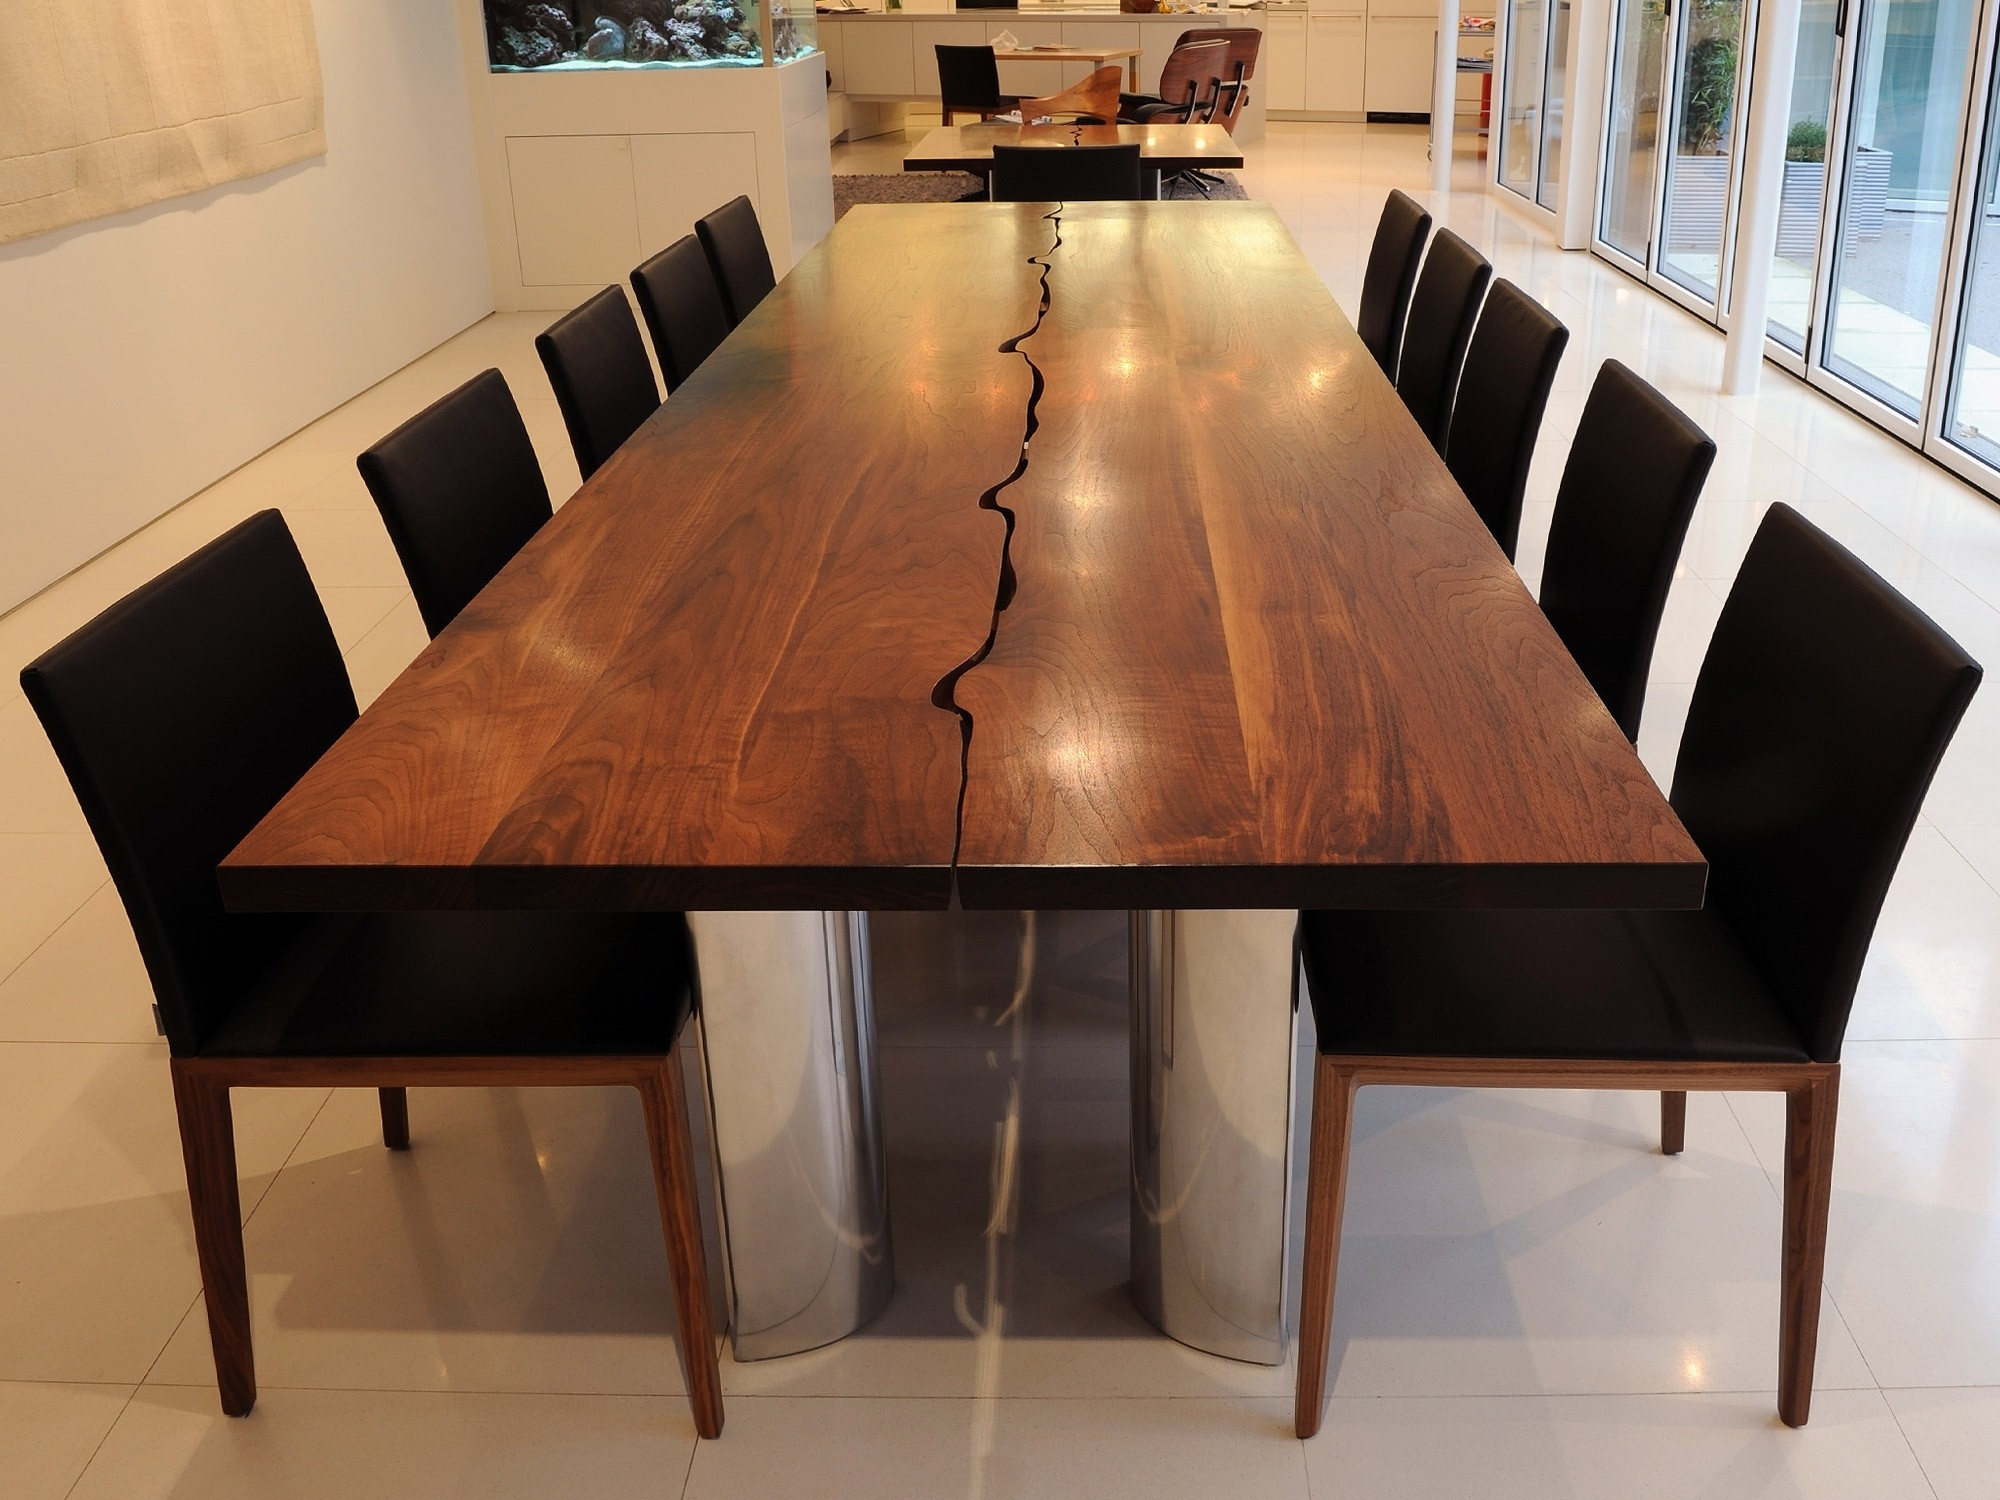 Dining Tables. Amazing Wood Dining Table Set: Wood Dining Table Set For Latest Dining Tables With Large Legs (Gallery 14 of 25)